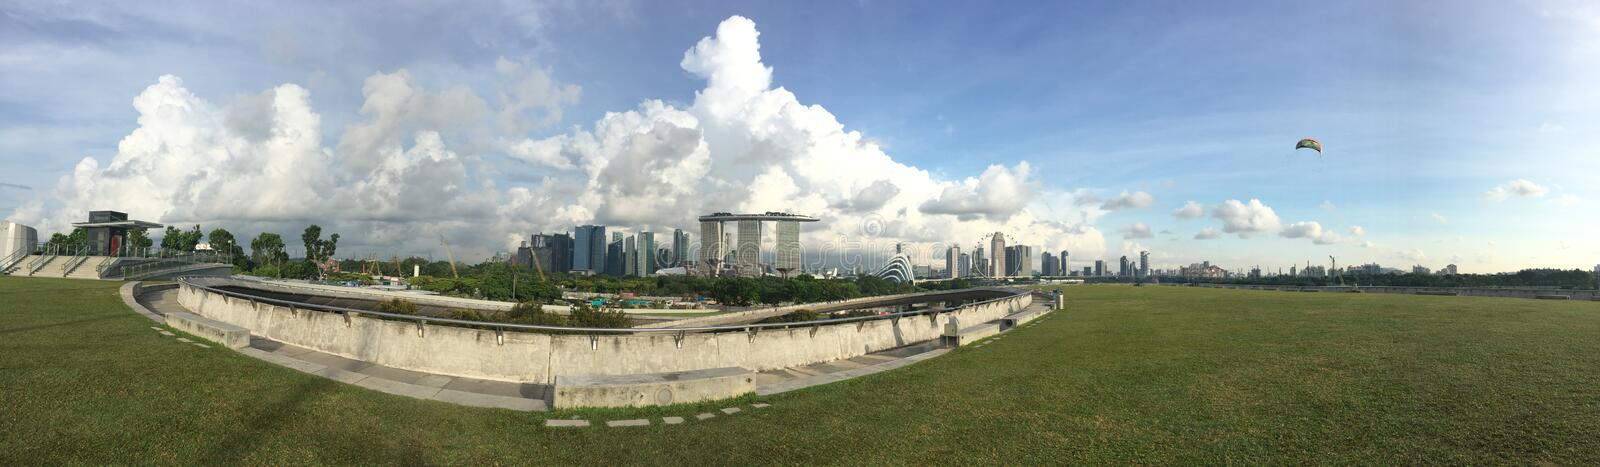 Marina Bay Sands da Marina Barrage immagine stock